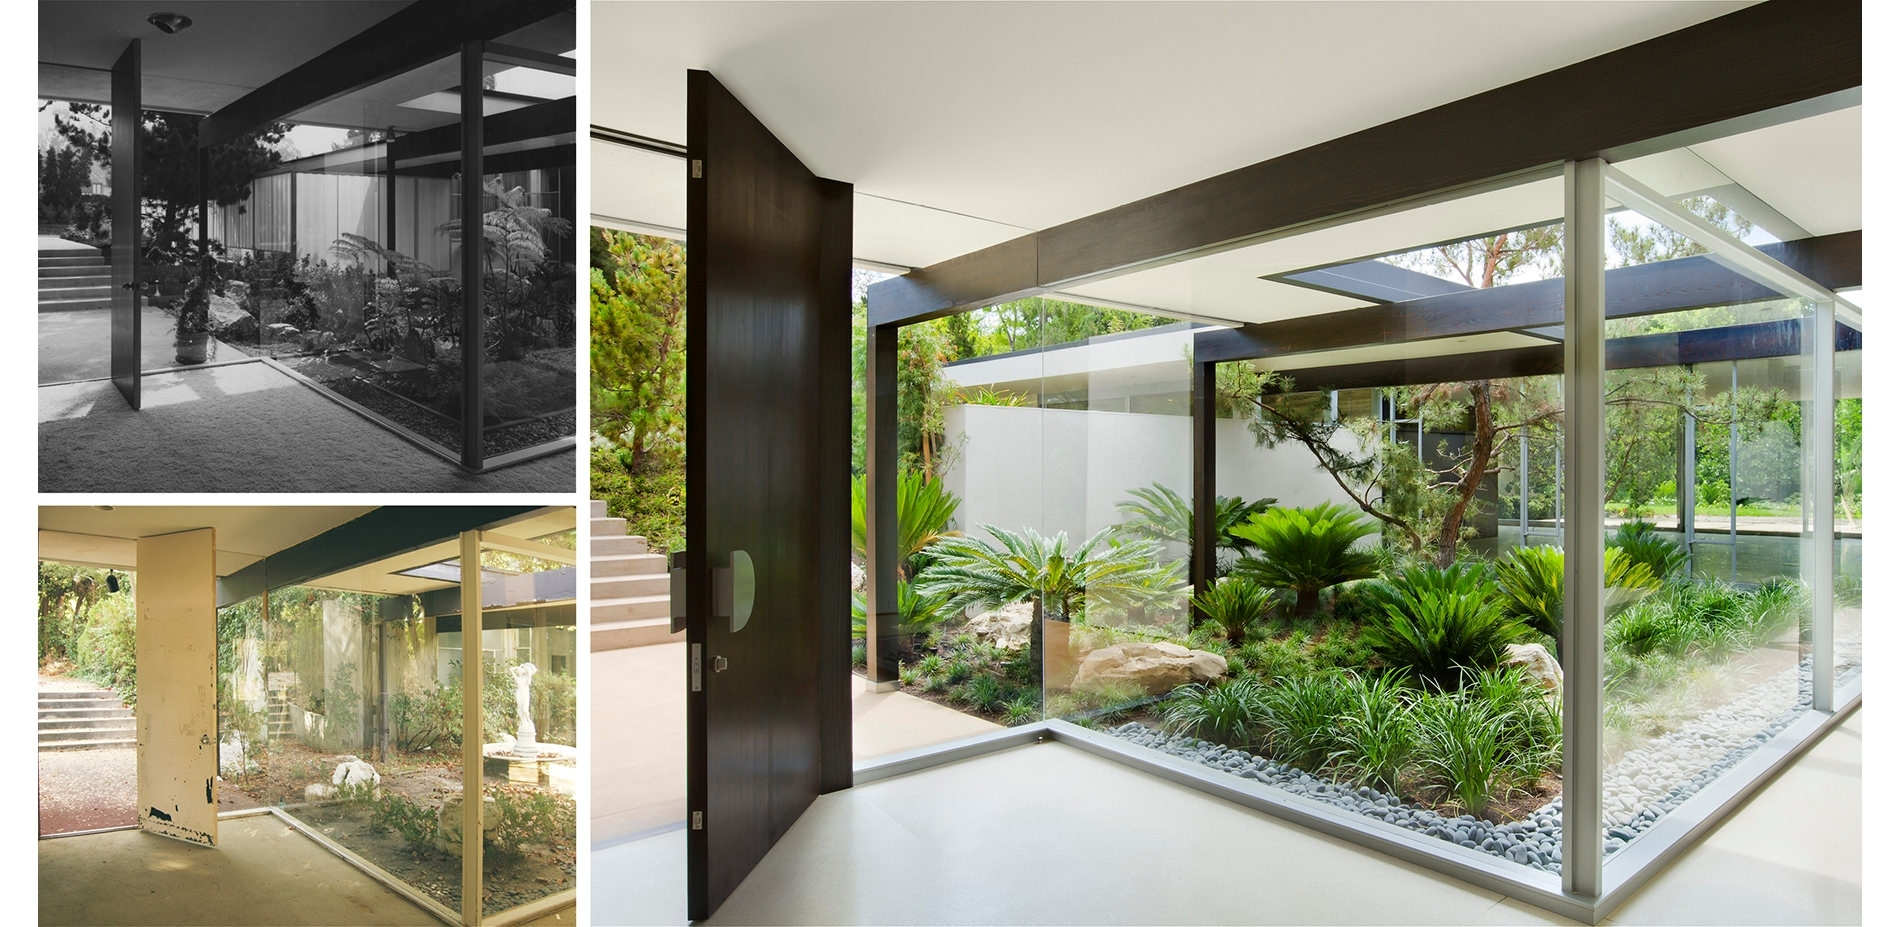 Kronish House | 2016 Asla Professional Awards for House Design With Central Garden